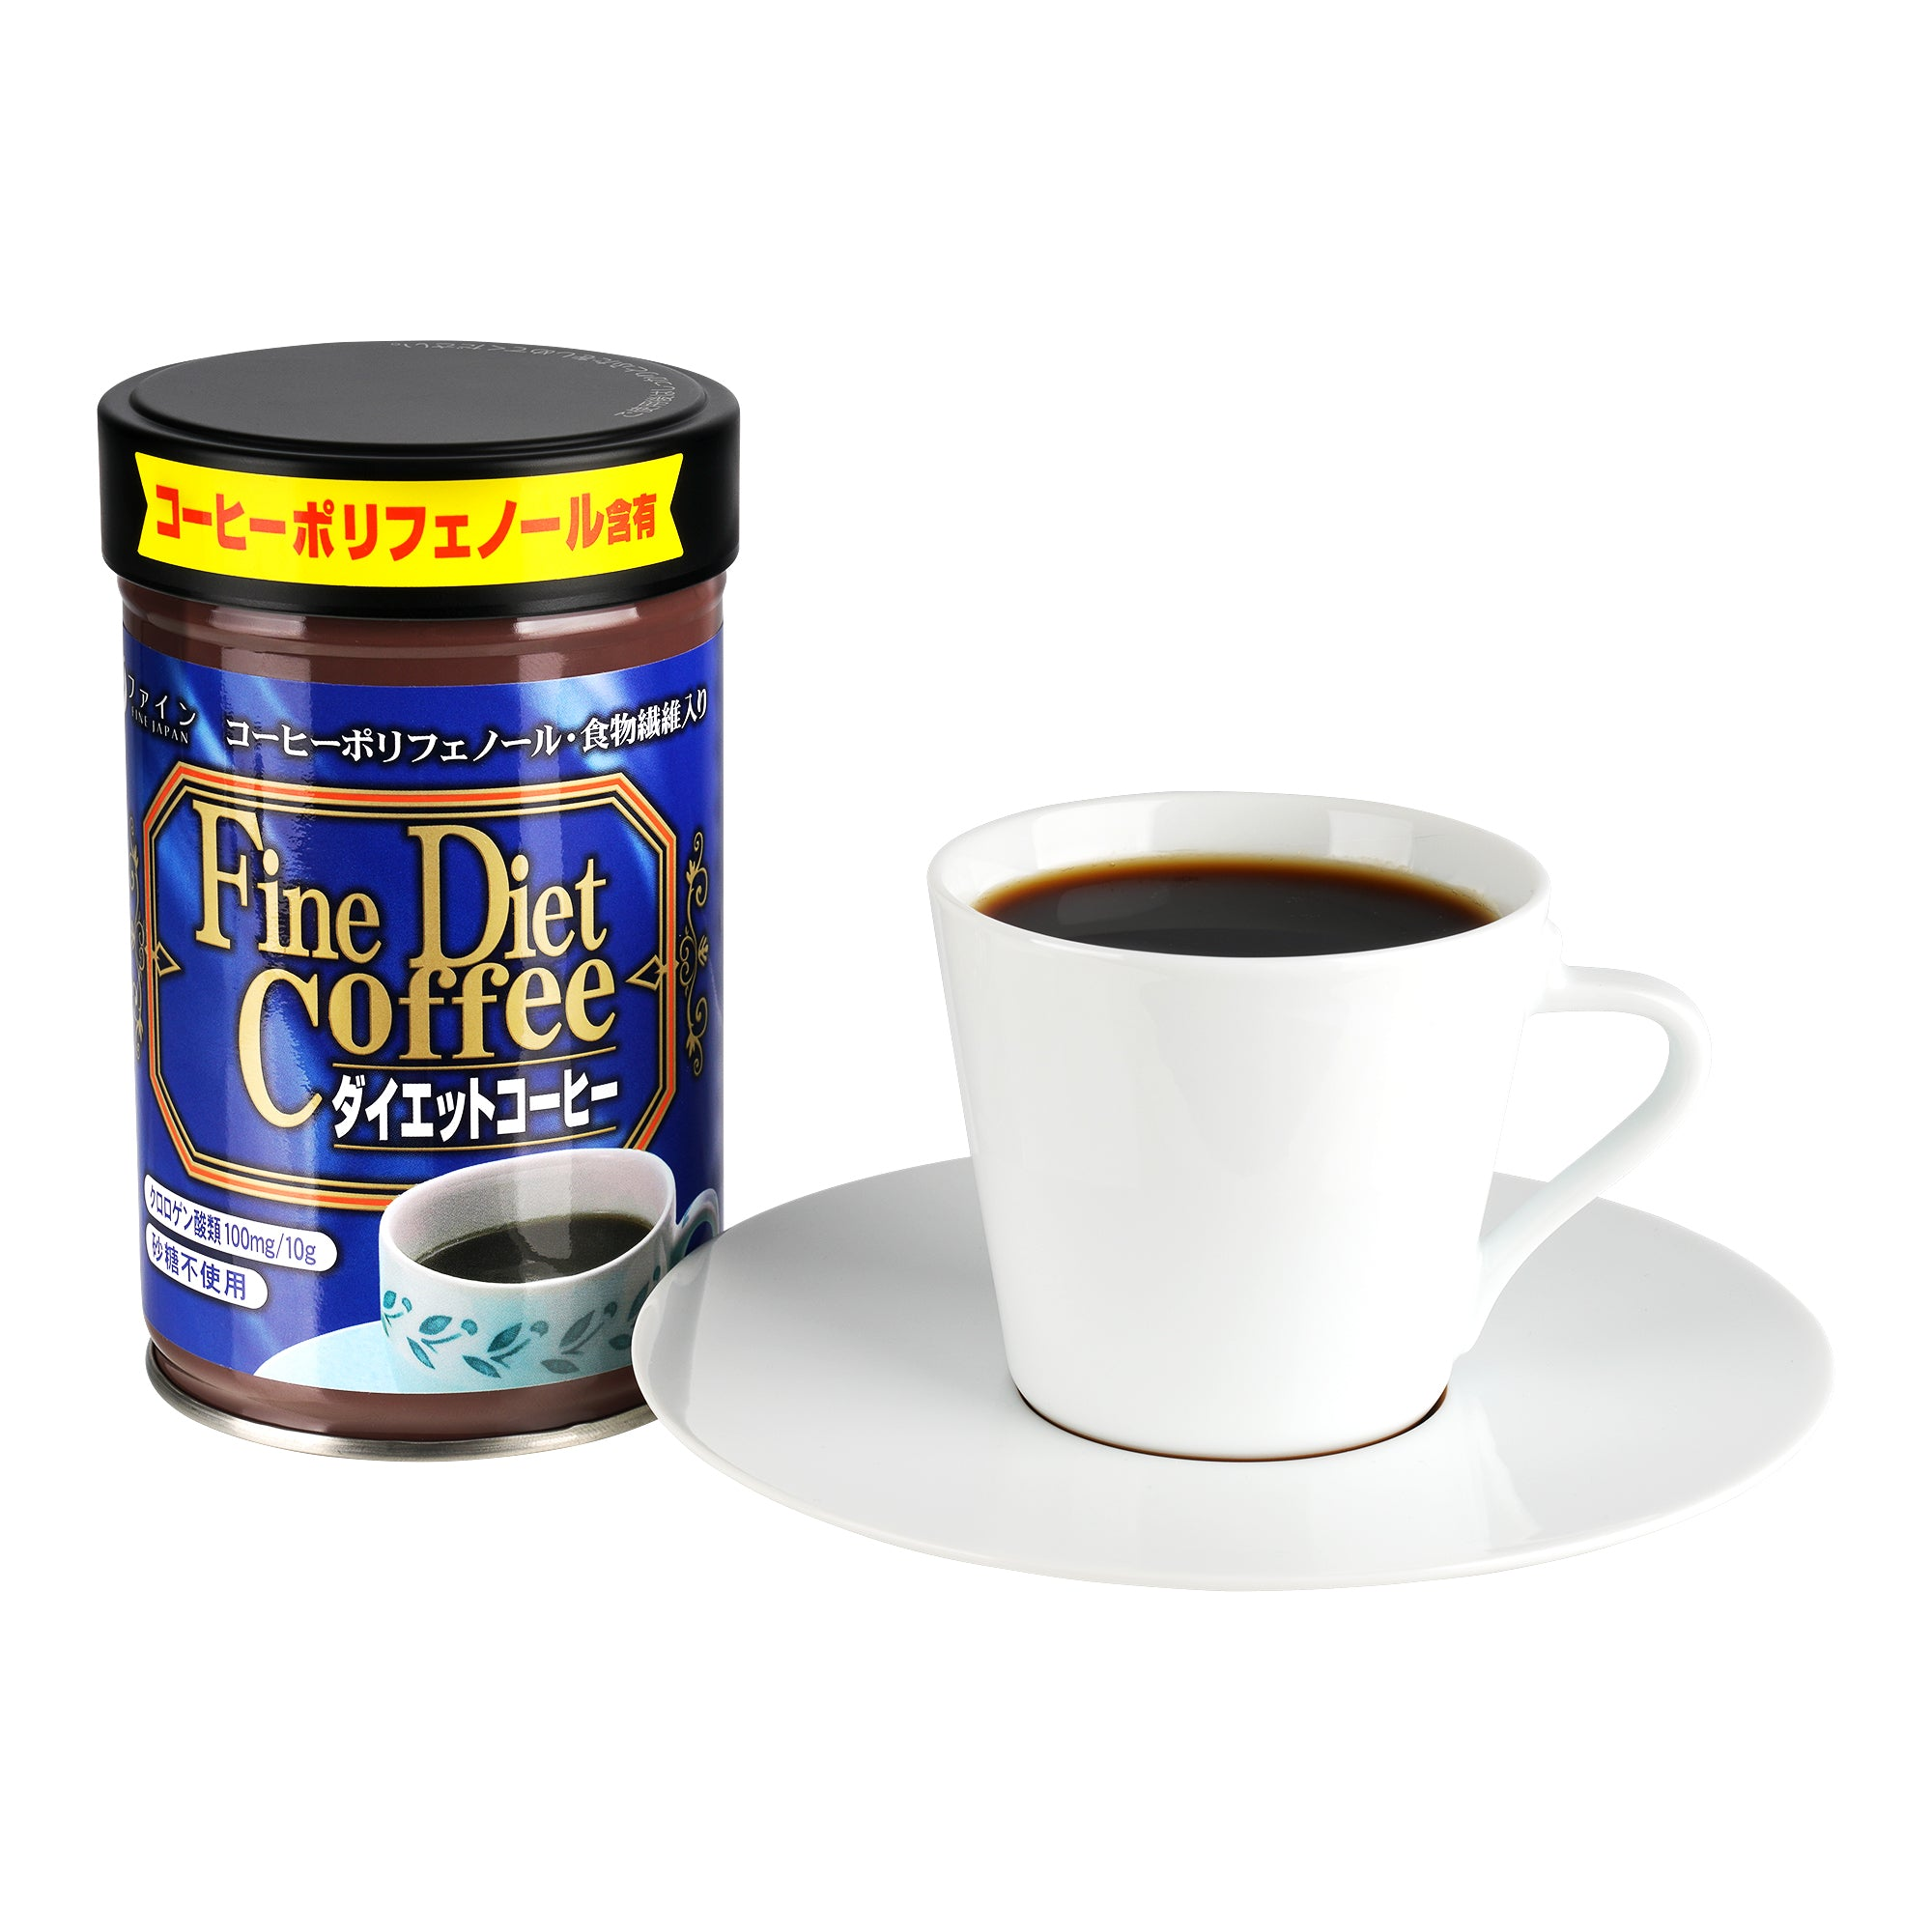 Fine Diet Coffee With Garcinia And Green Coffee Bean Extract To